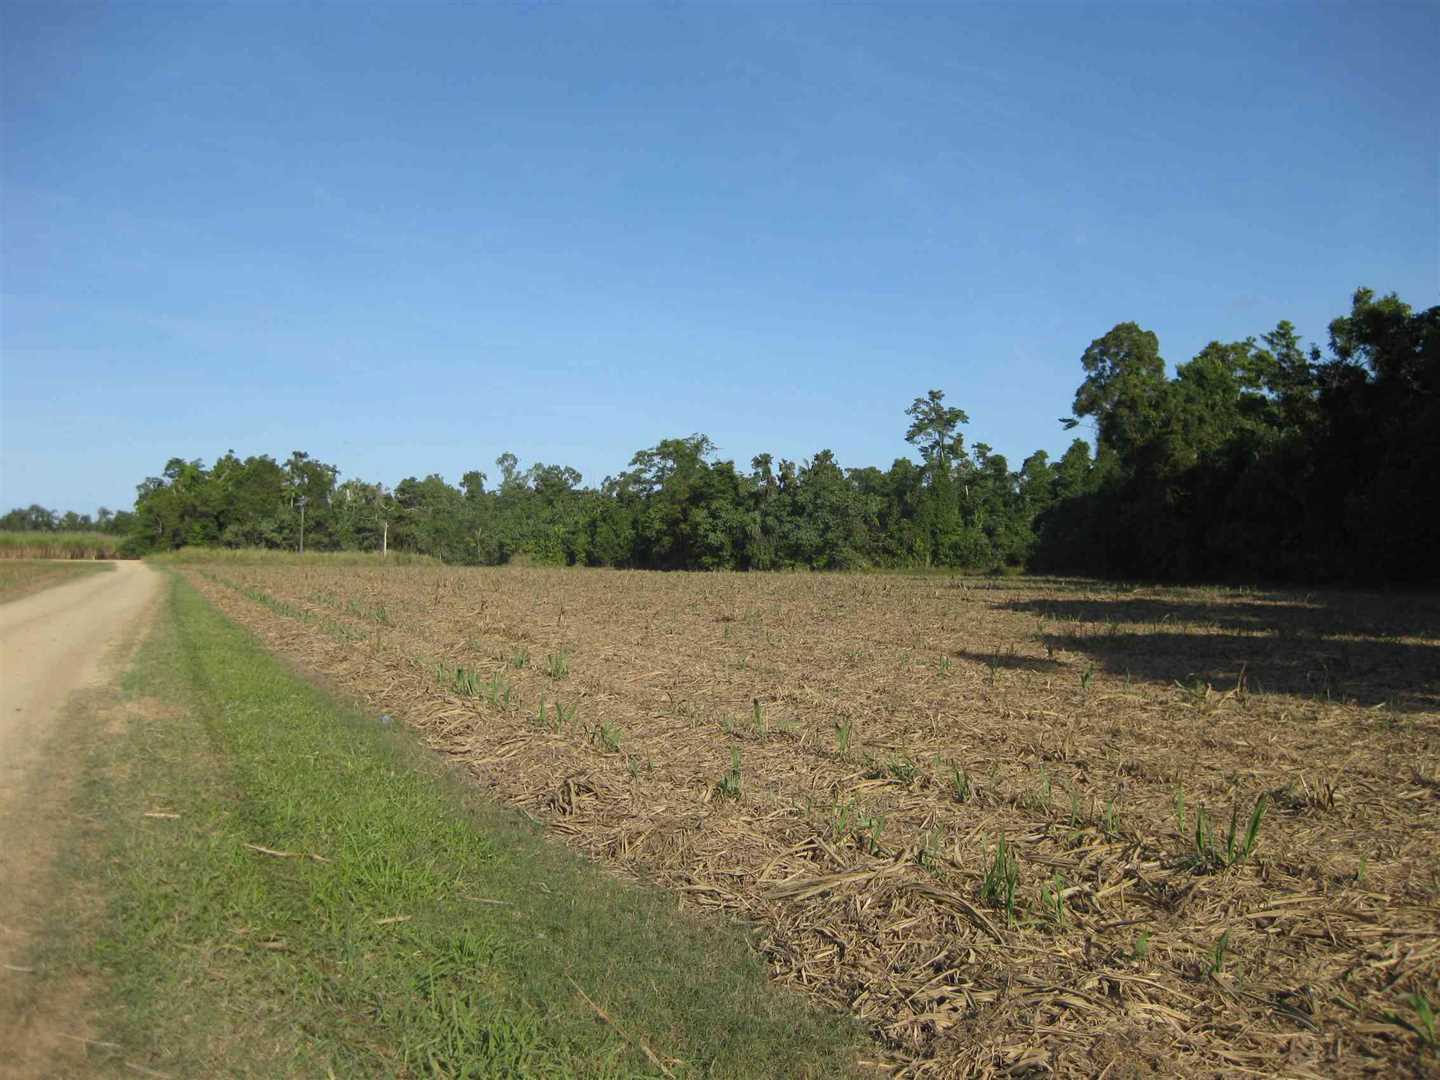 View of part of property showing some harvested cane